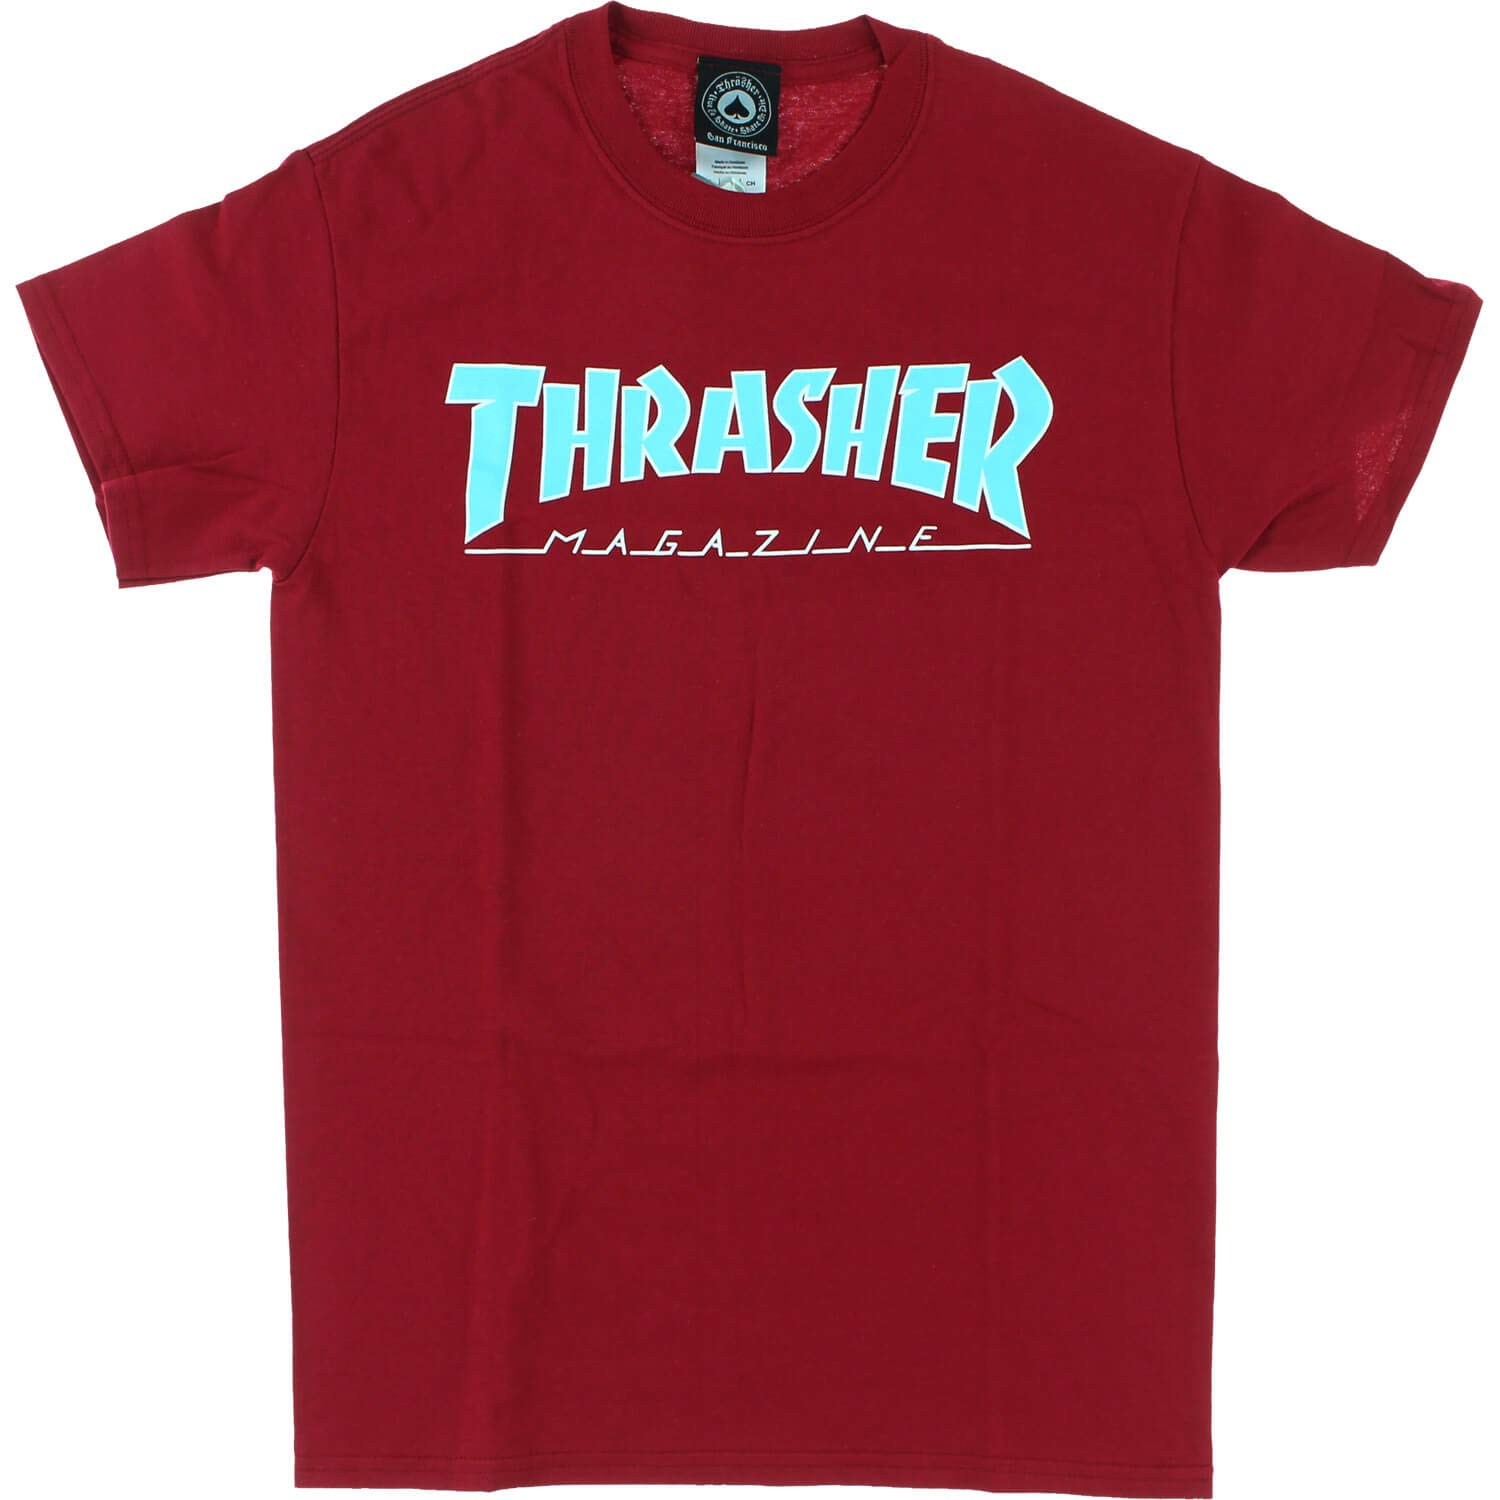 Thrasher Magazine Outlined Cardinal Red T-Shirt - Medium